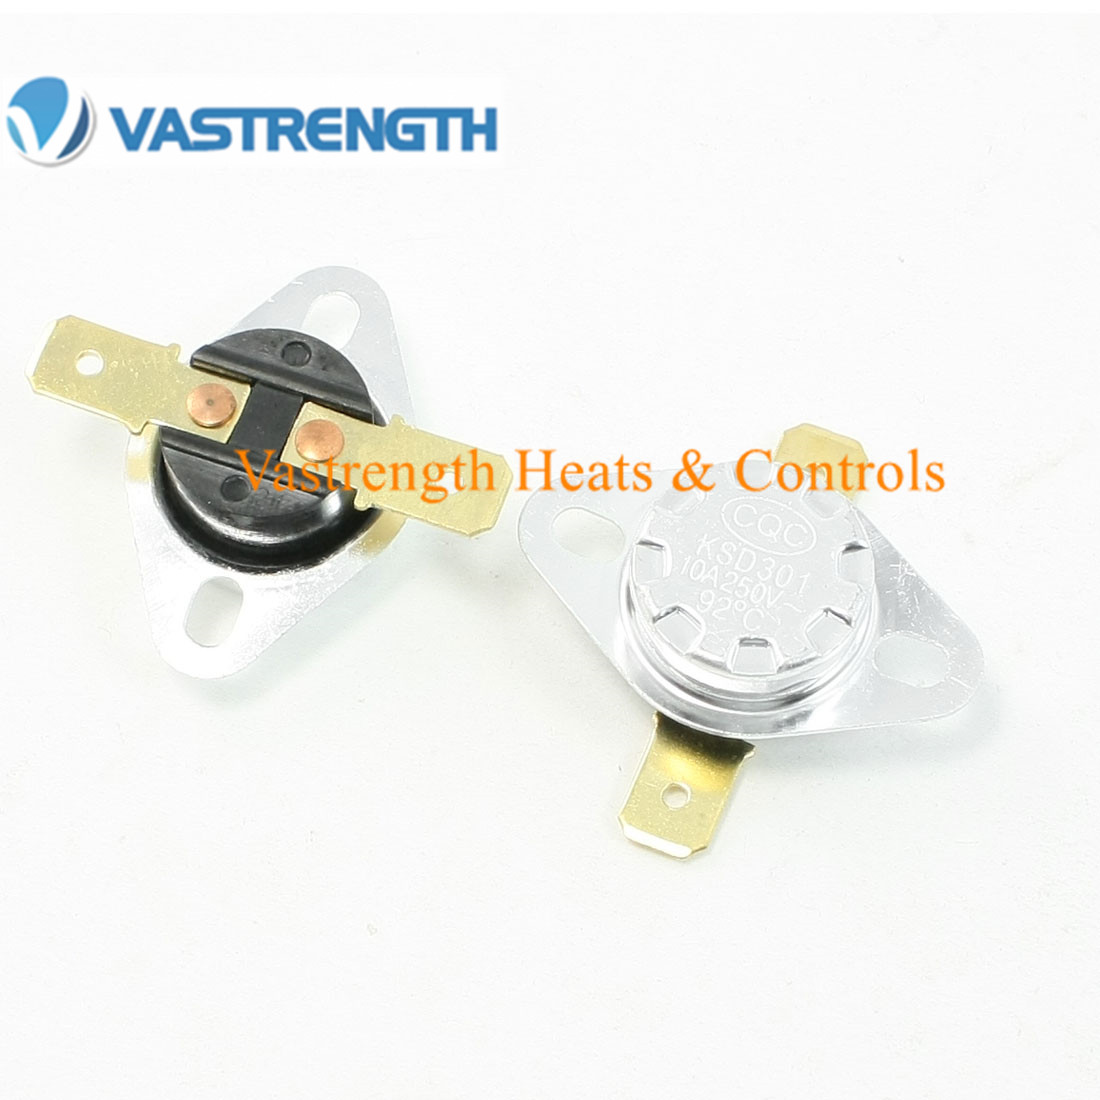 Bimetal Thermostat for Kettle, Water Dispenser, Coffee Maker